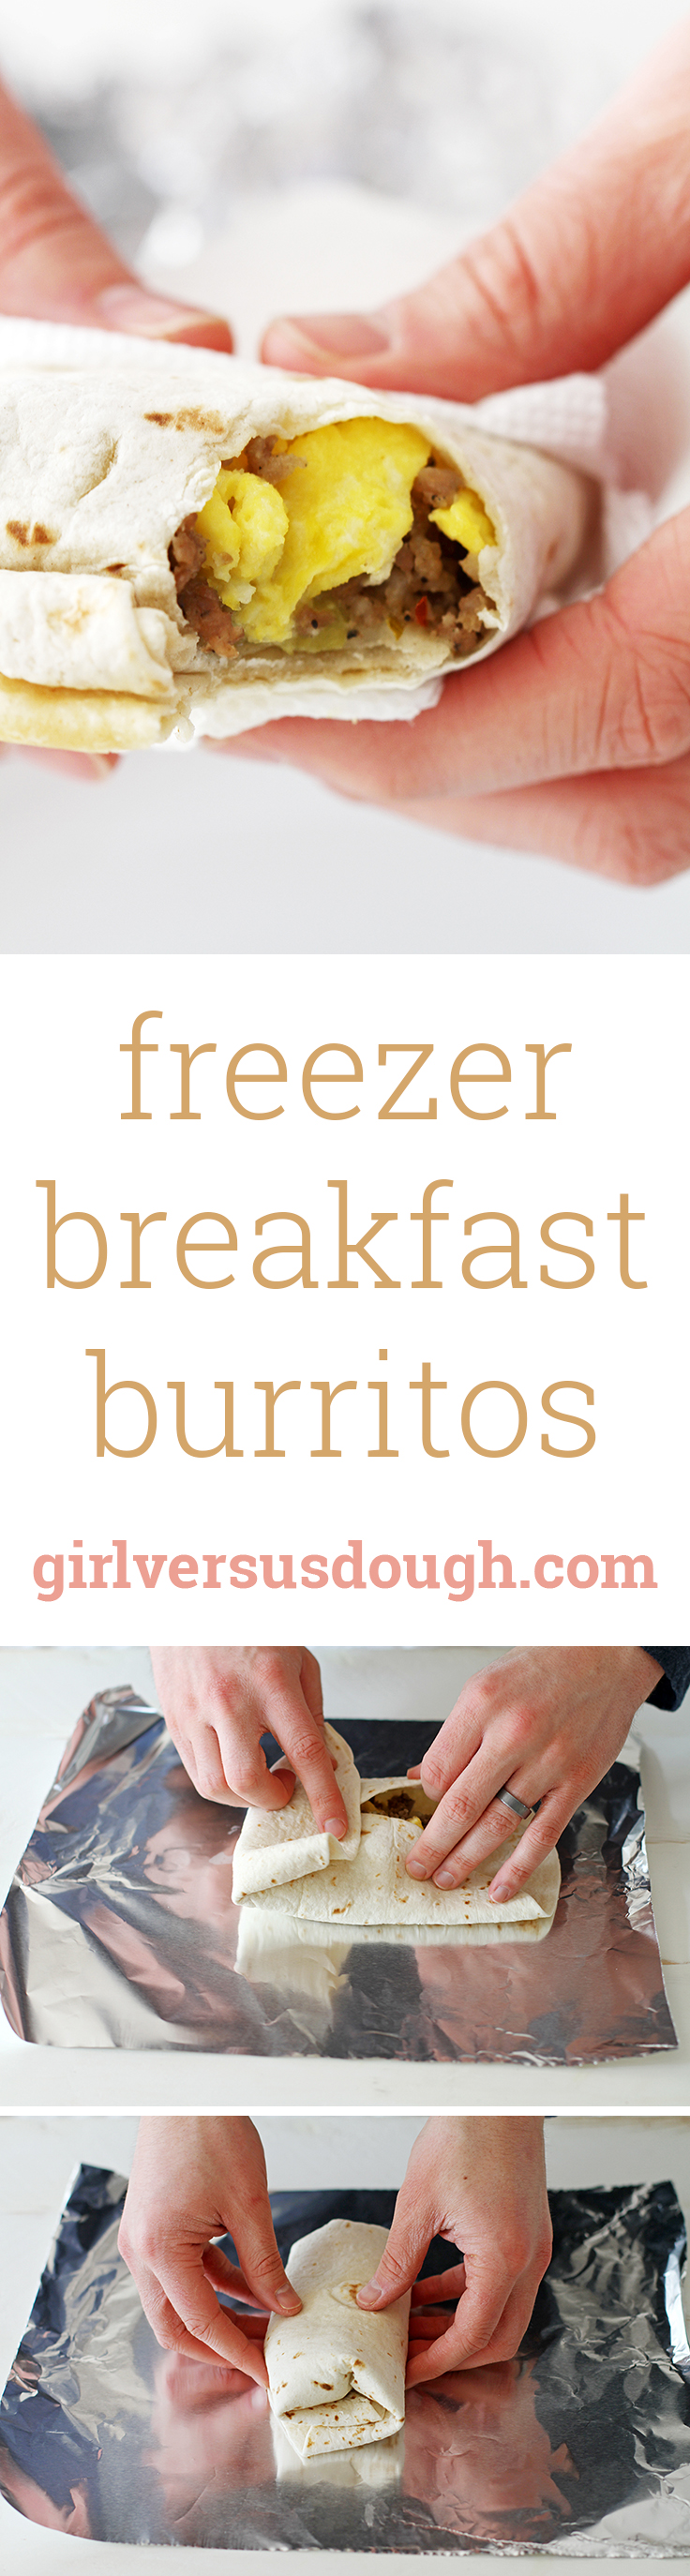 Freezer Breakfast Burritos -- This big-batch recipe is easy to make, super satisfying and perfect for on-the-go breakfasts! girlversusdough.com @girlversusdough